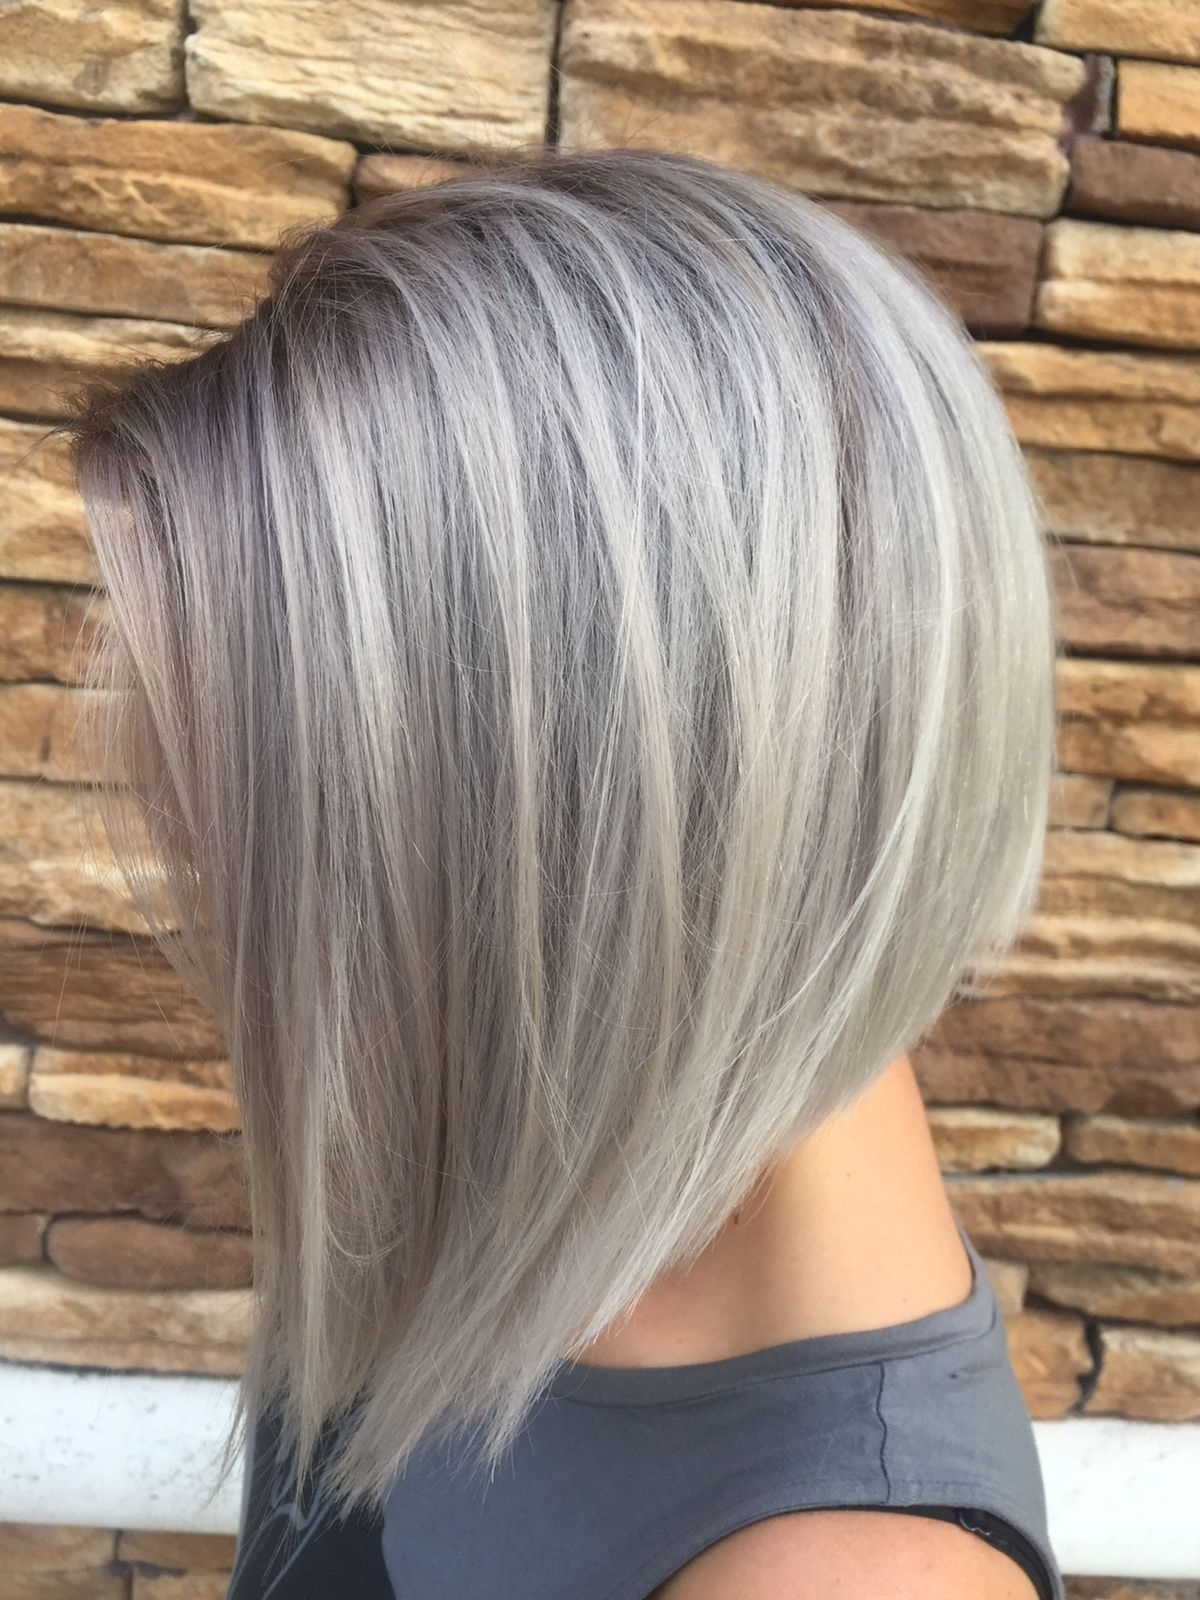 Popular Short Silver Blonde Bob Hairstyles Inside Braids, Buns, And Twists!: Step By Step Tutorials For 82 Fabulous (View 15 of 20)